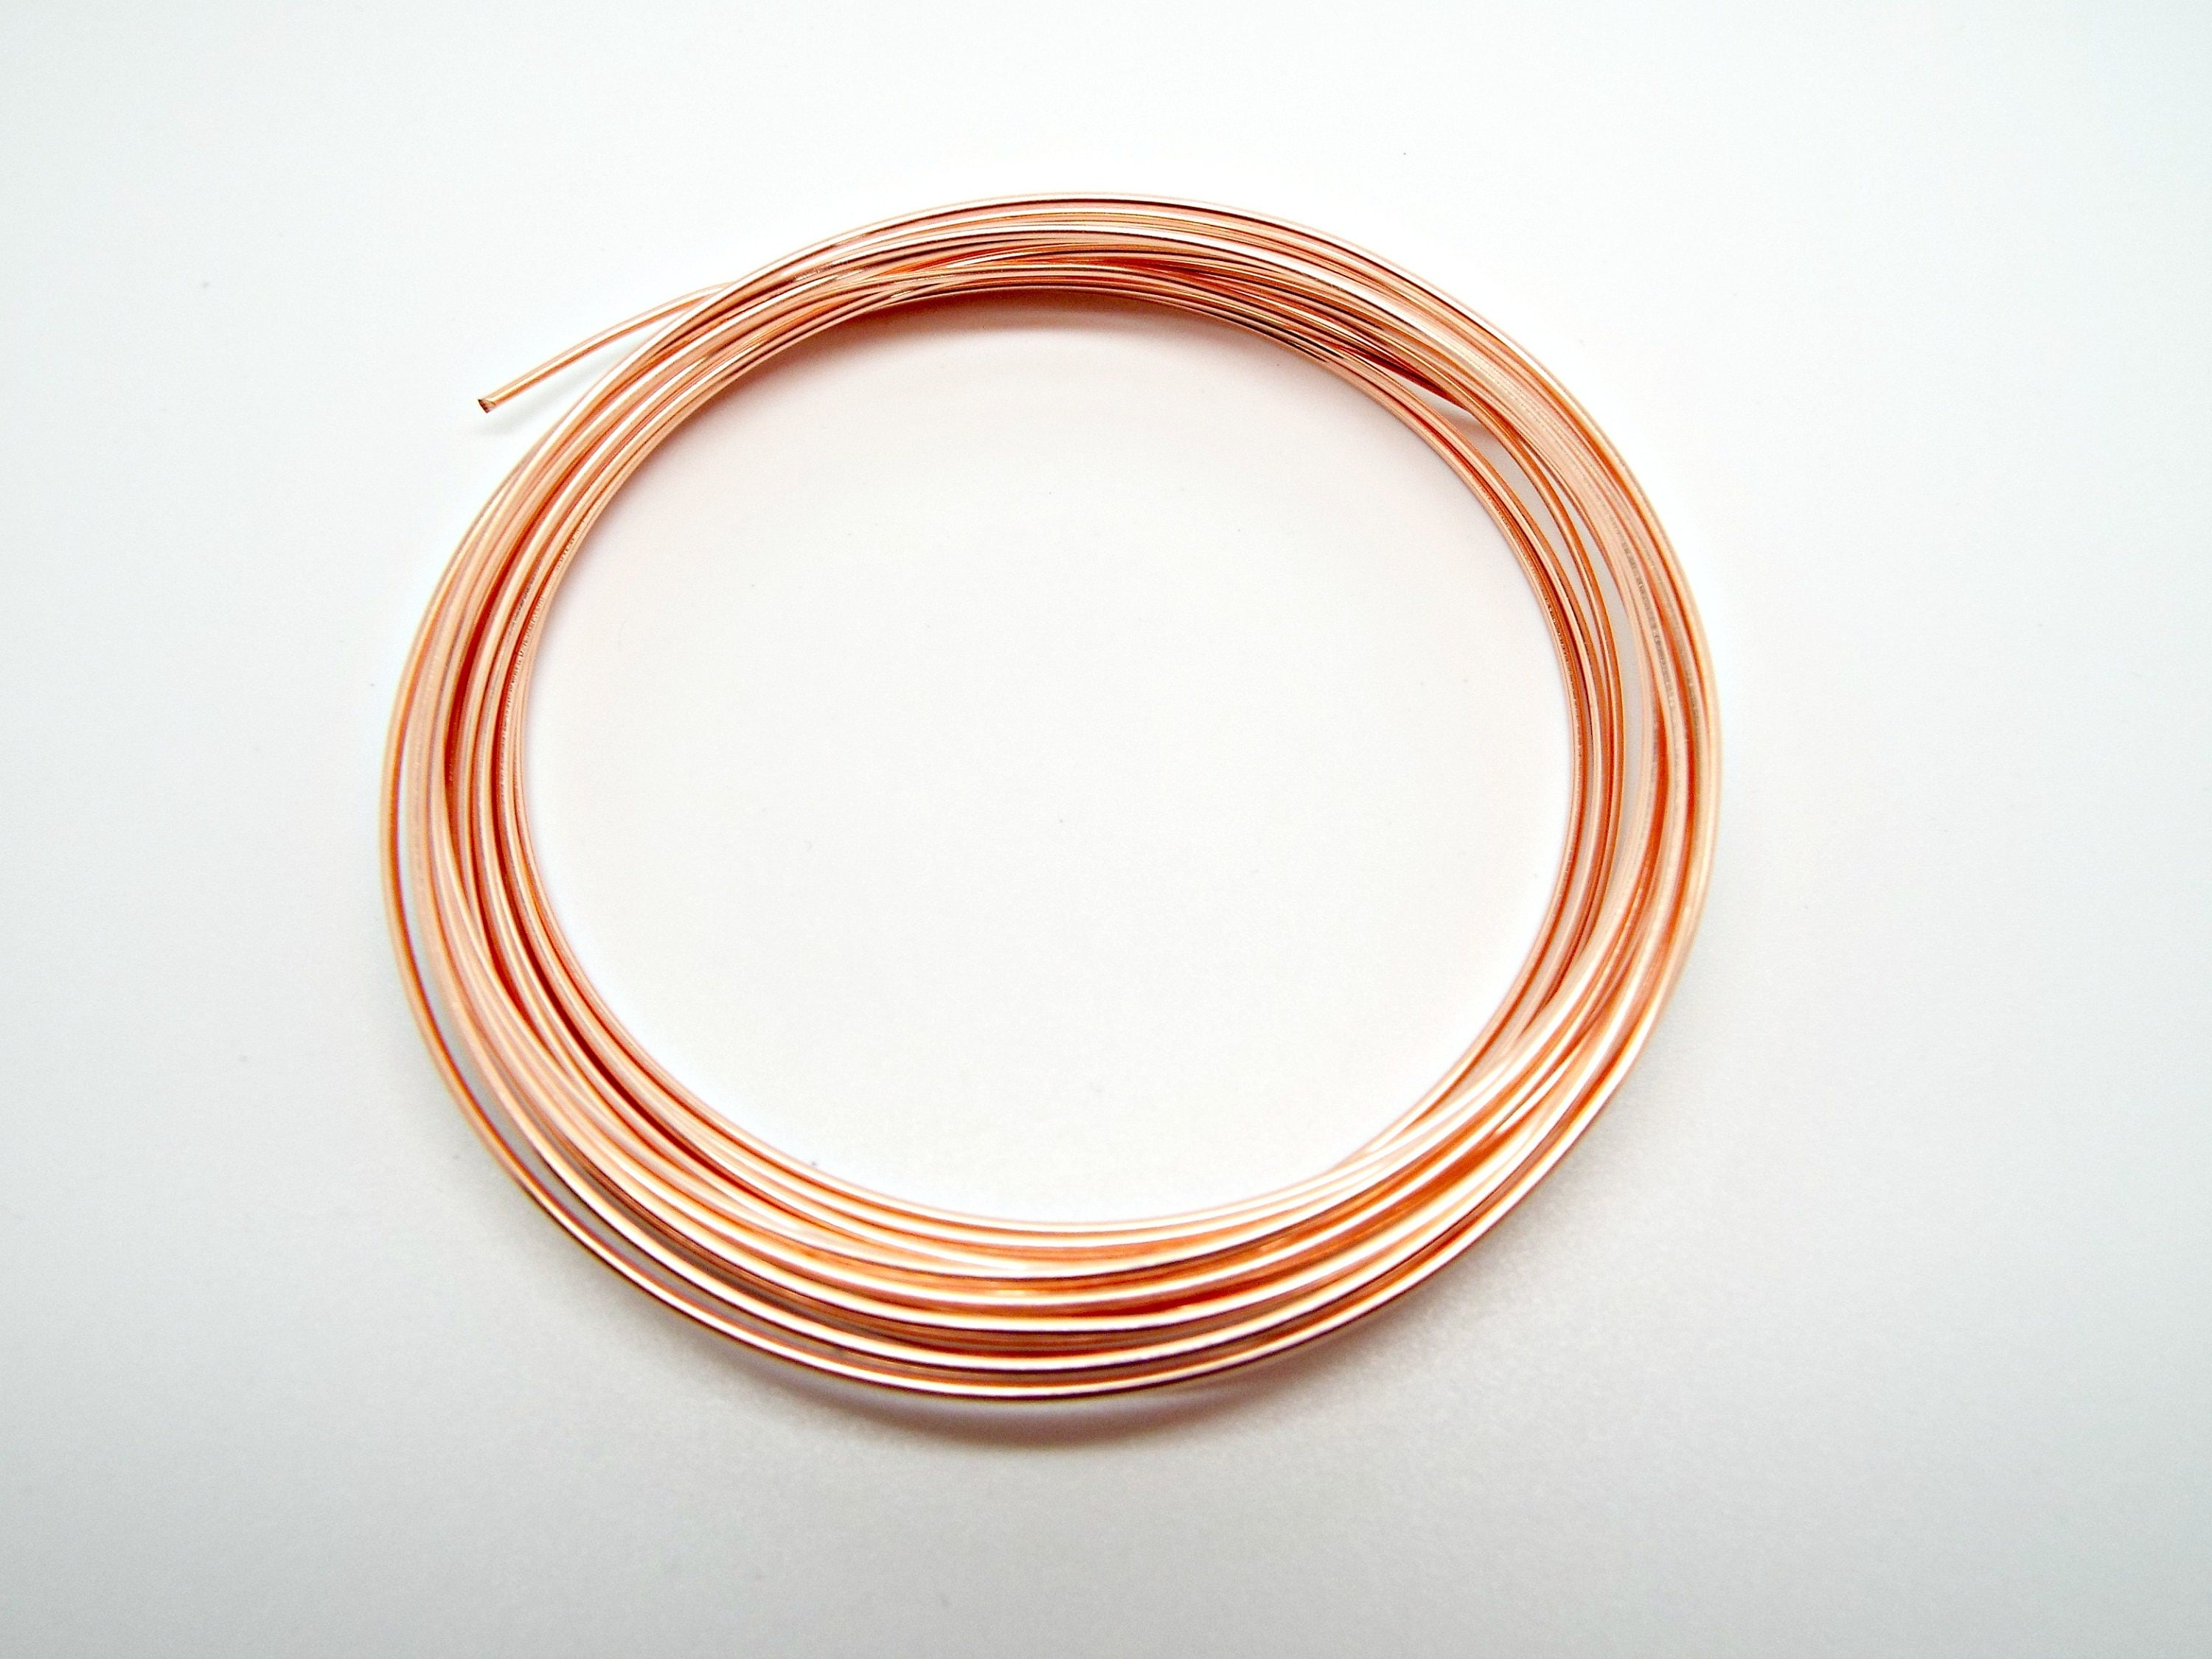 Famous 18 Gauge Copper Wire Composition - Electrical Diagram Ideas ...